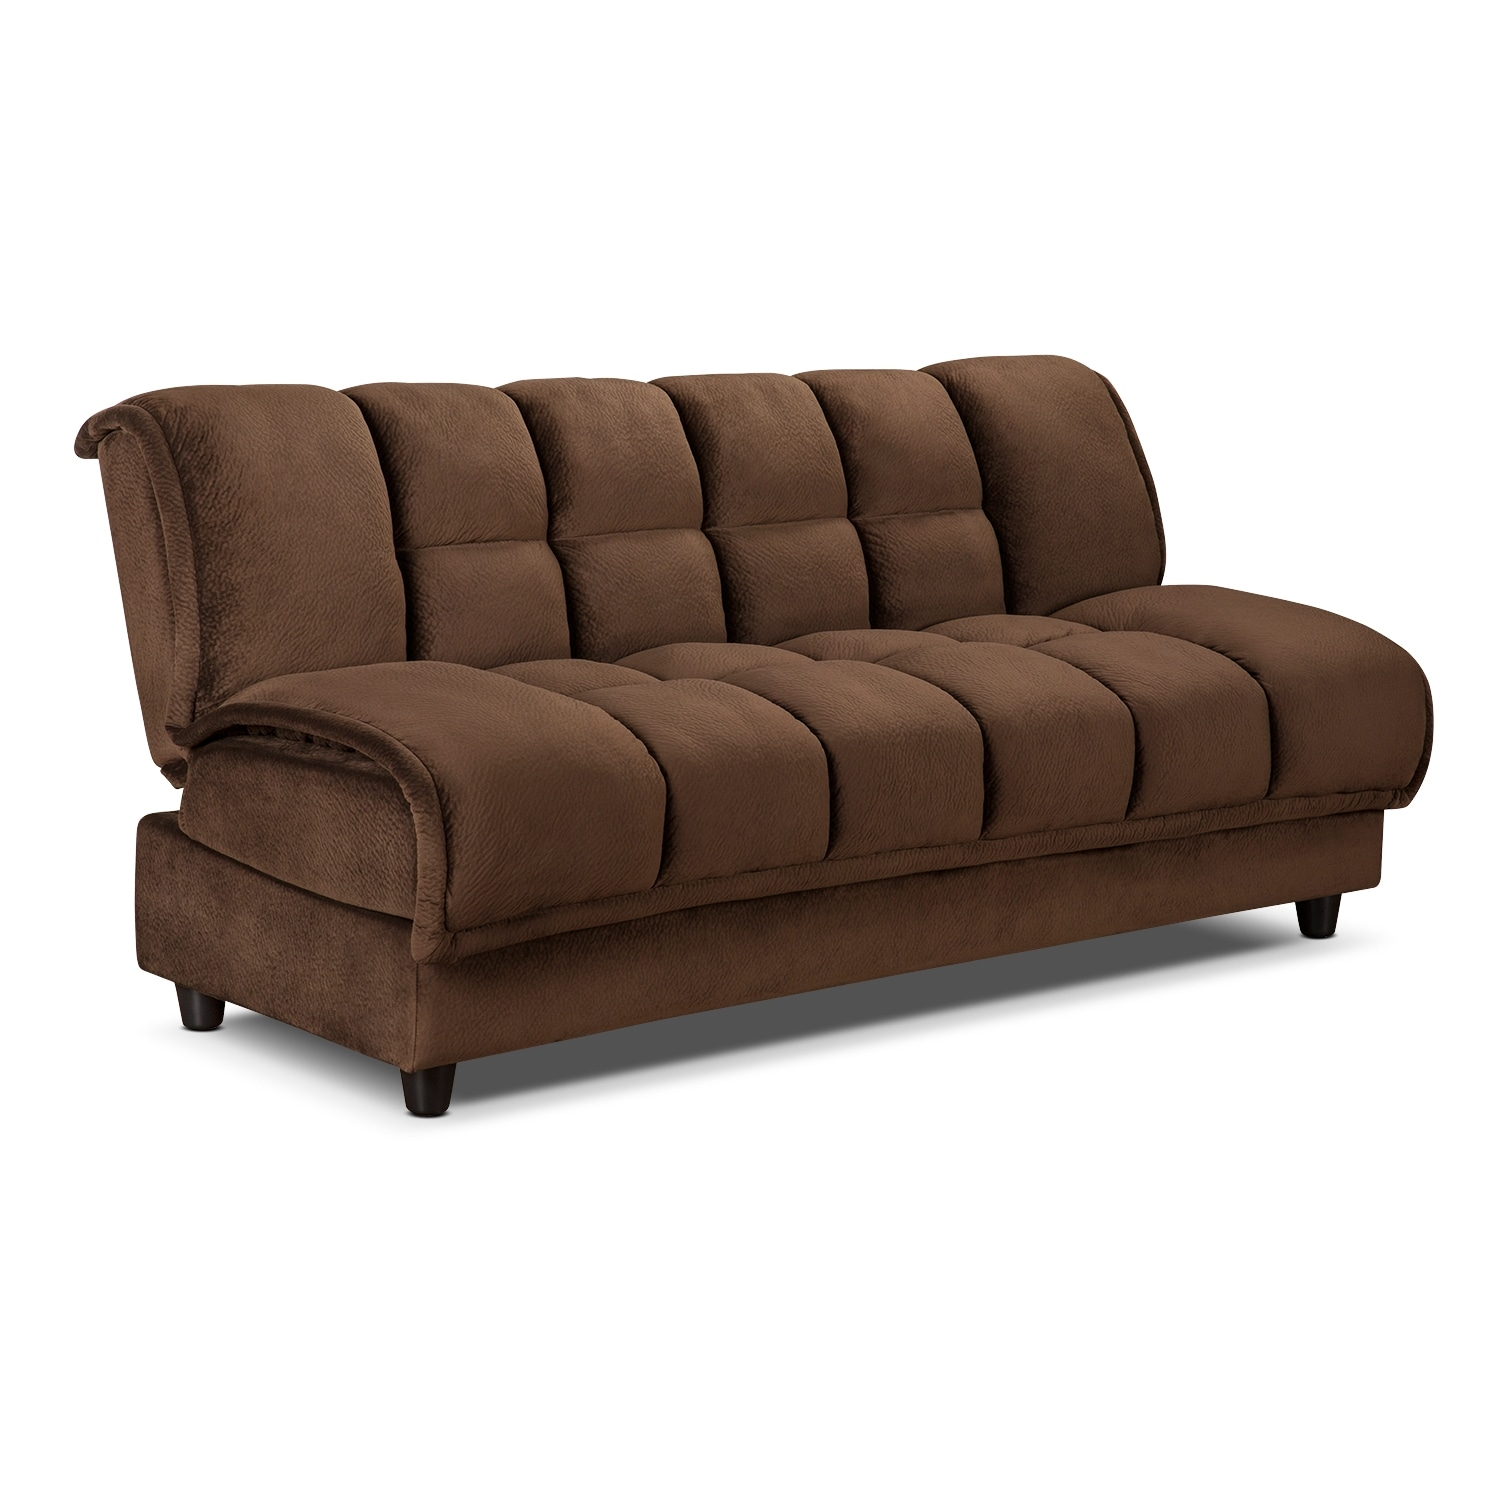 Bennett futon sofa bed espresso american signature for Divan furniture